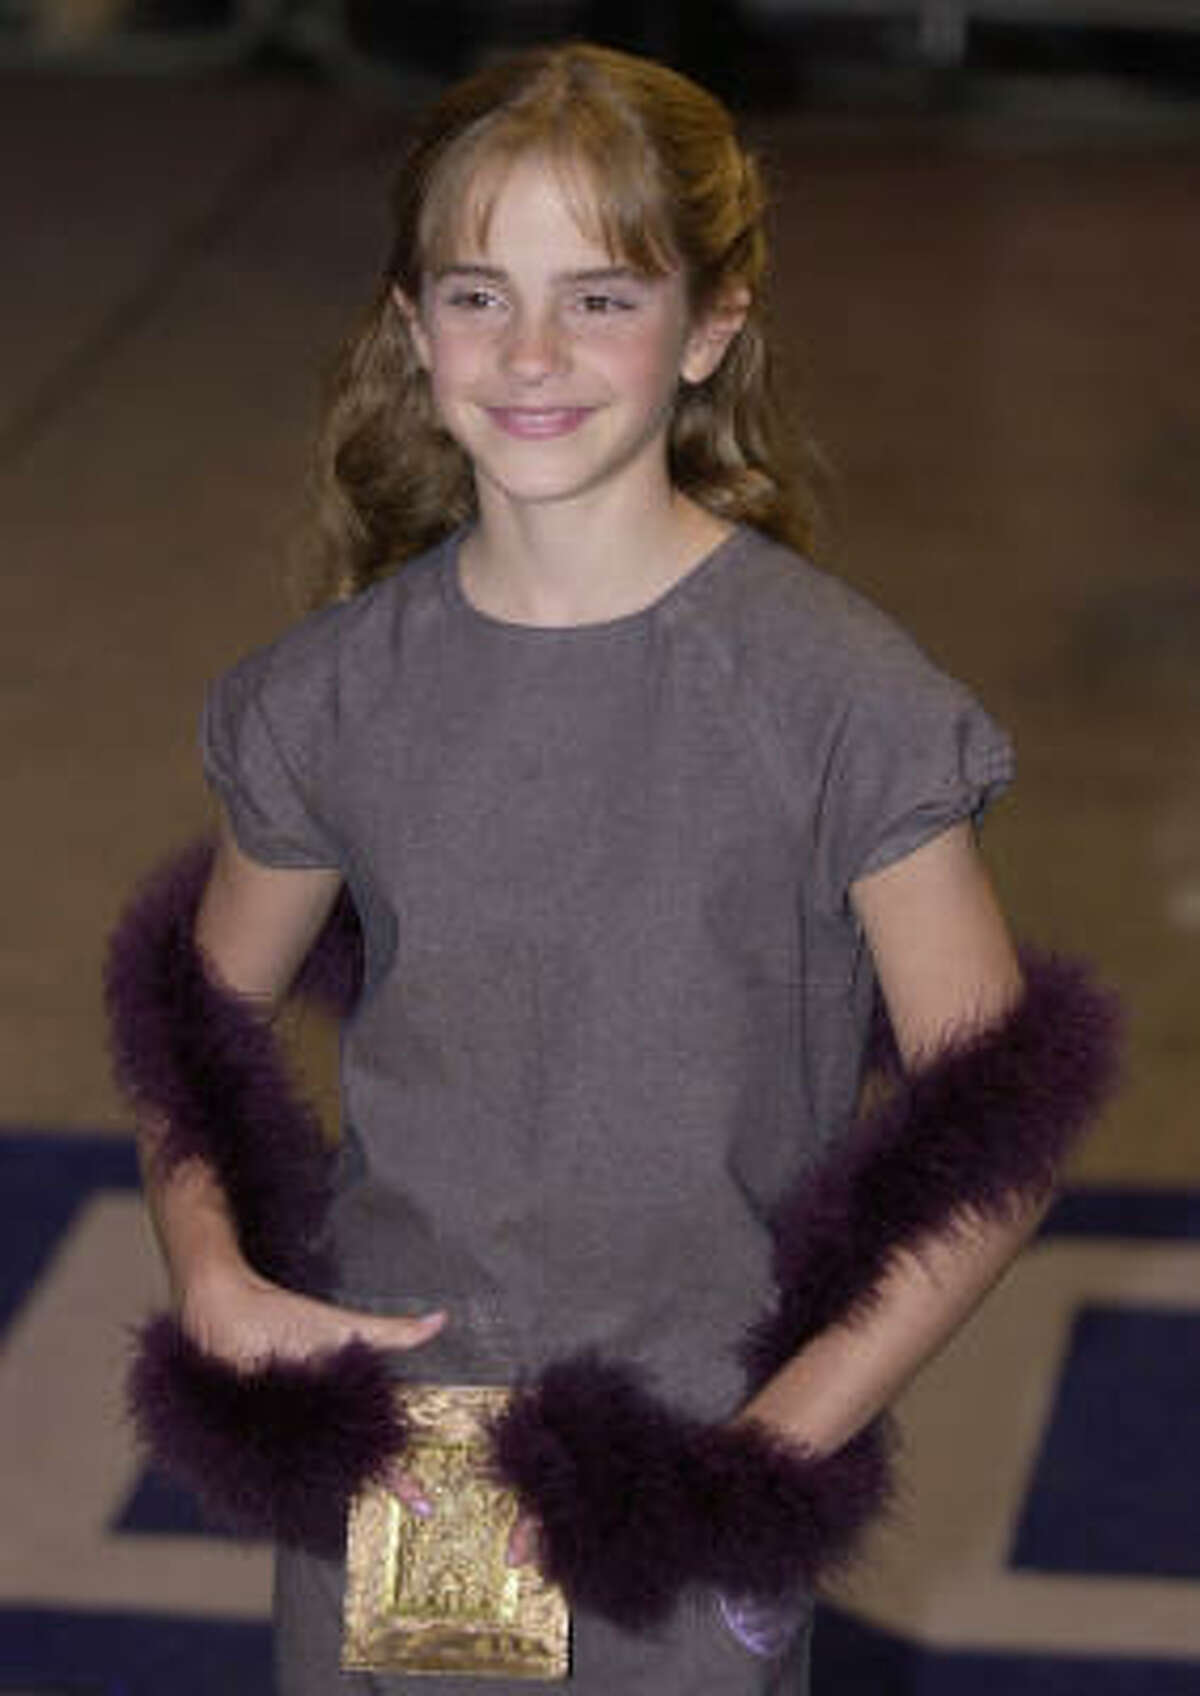 Emma Watson, who plays Hermione Granger, at Harry Potter and the Philosopher's Stone in London in 2001. Richard Lewis/The Associated Press